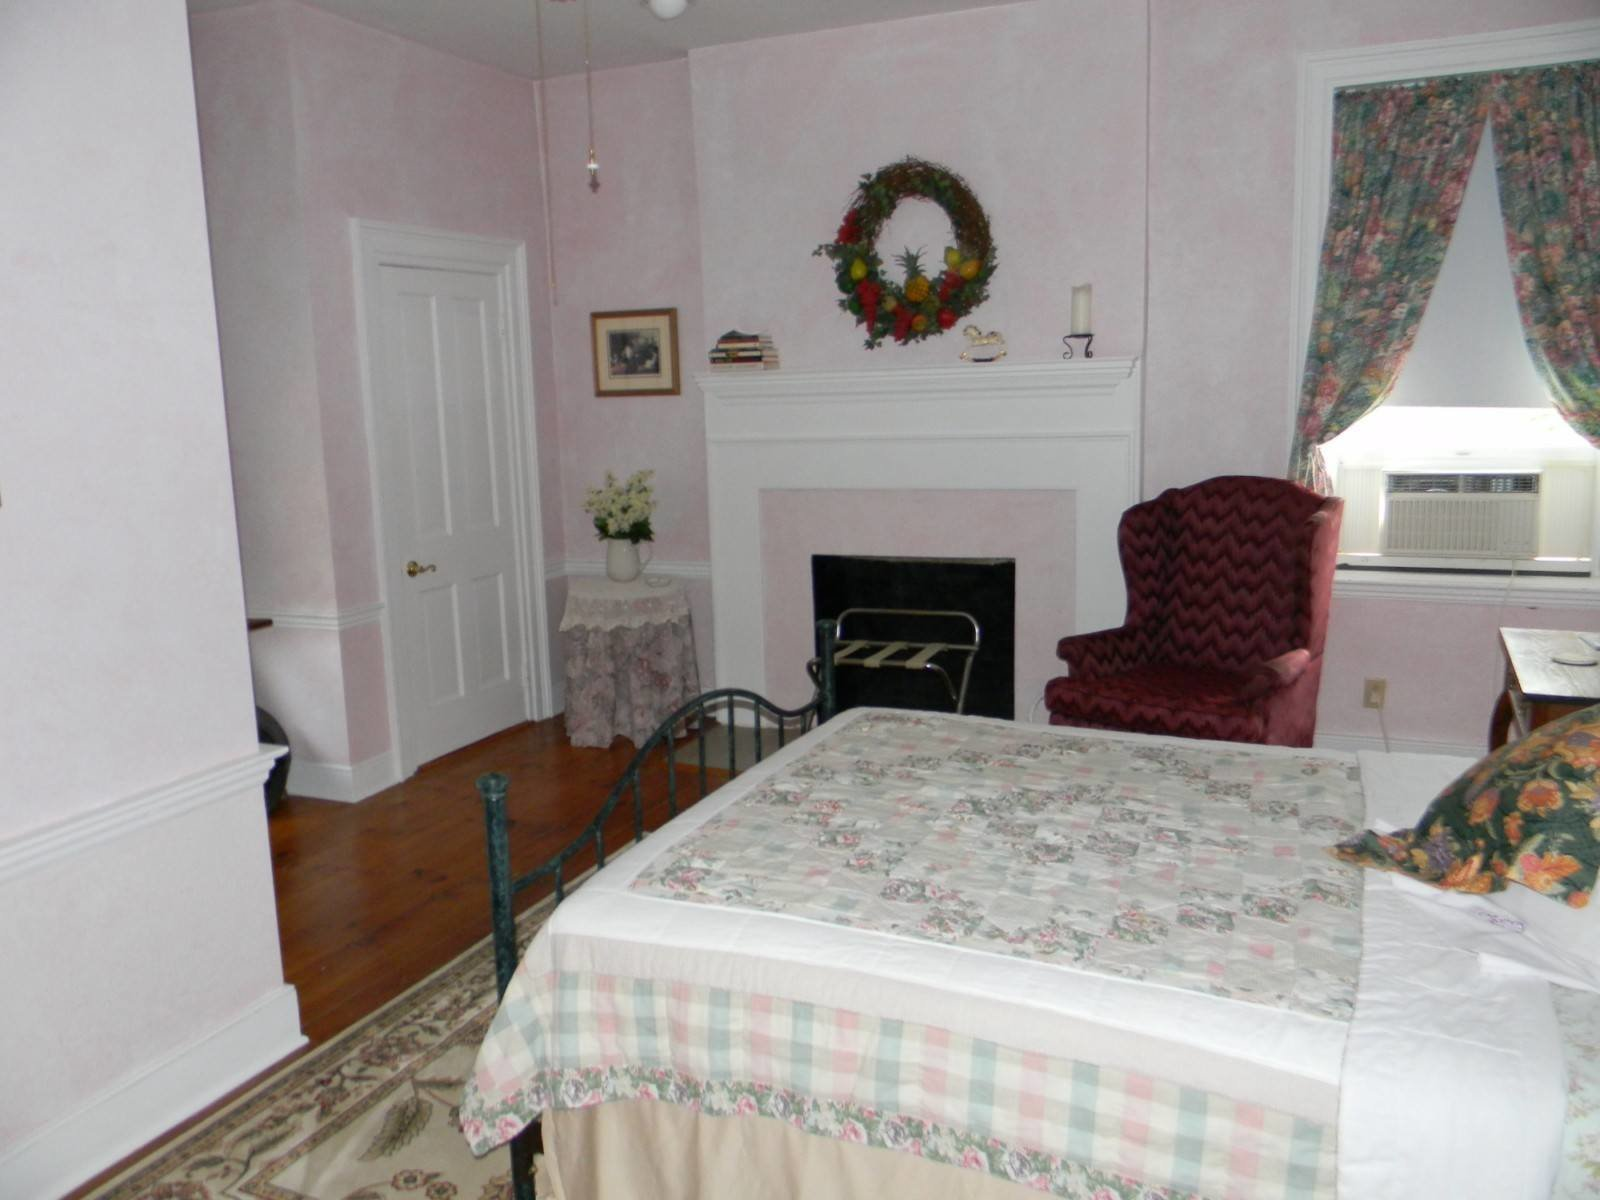 Best 939 Main St White Sulphur Springs Wv 24986 Historic Home For Sale Lewisburg Wv Homes For With Pictures